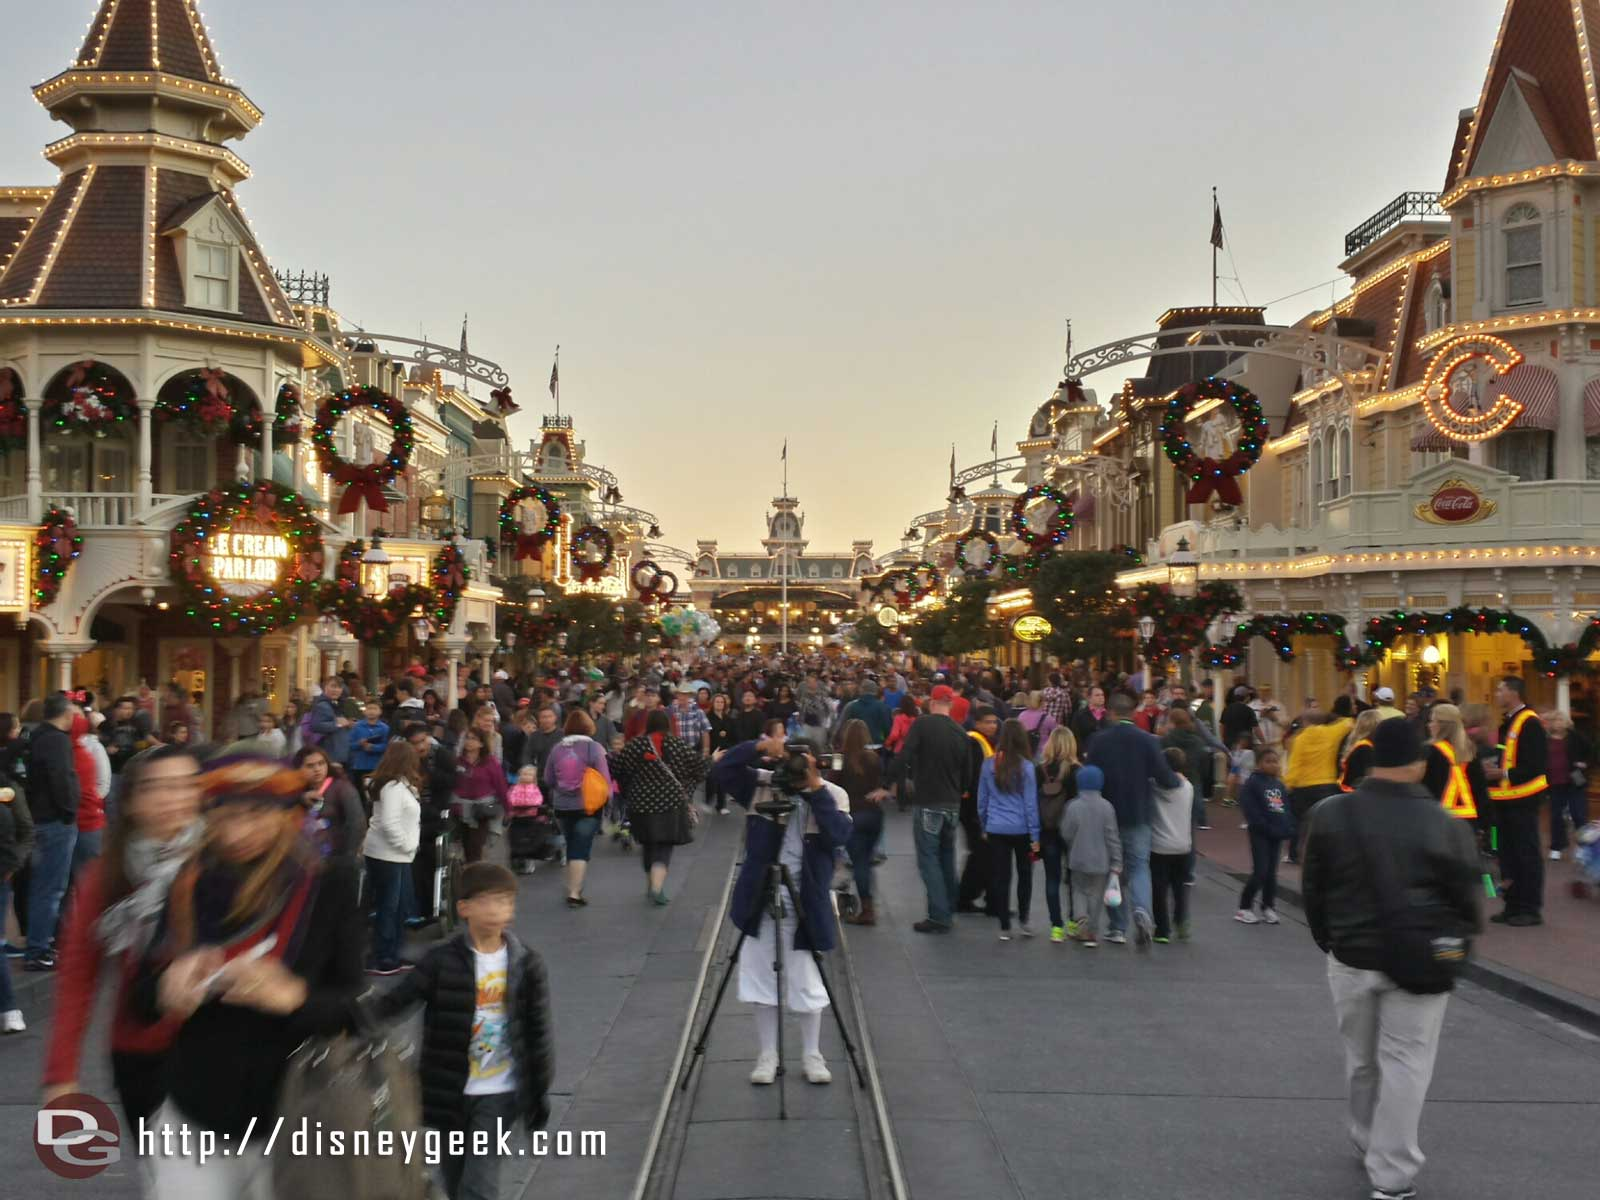 Main Street USA from near the hub, no Christmas tree yet #WDW